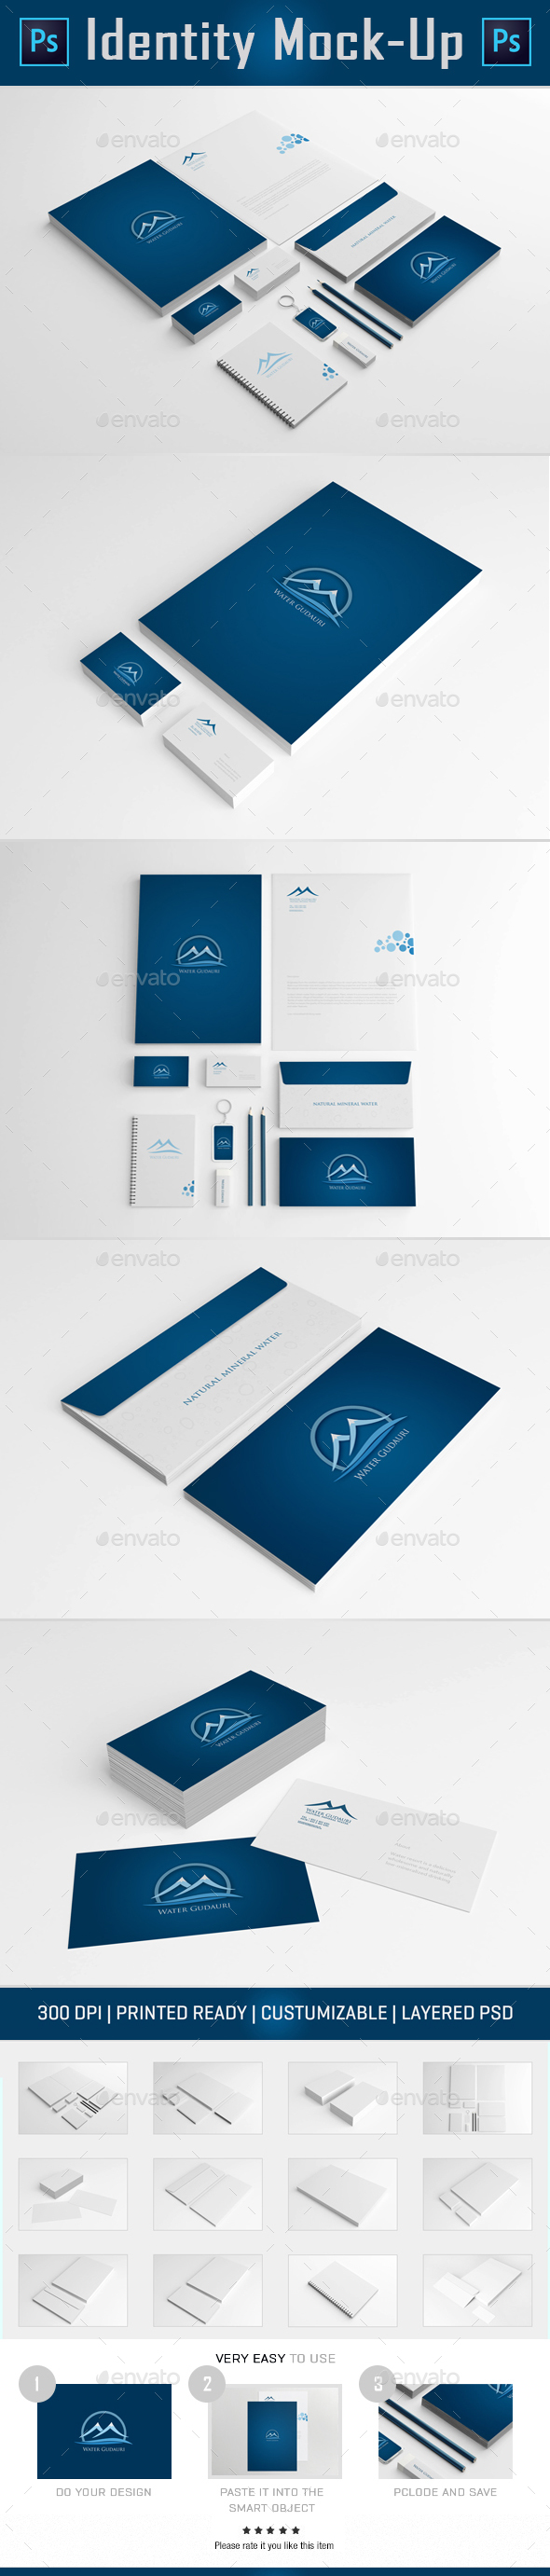 Branding Identity Mock Up II (Stationery)